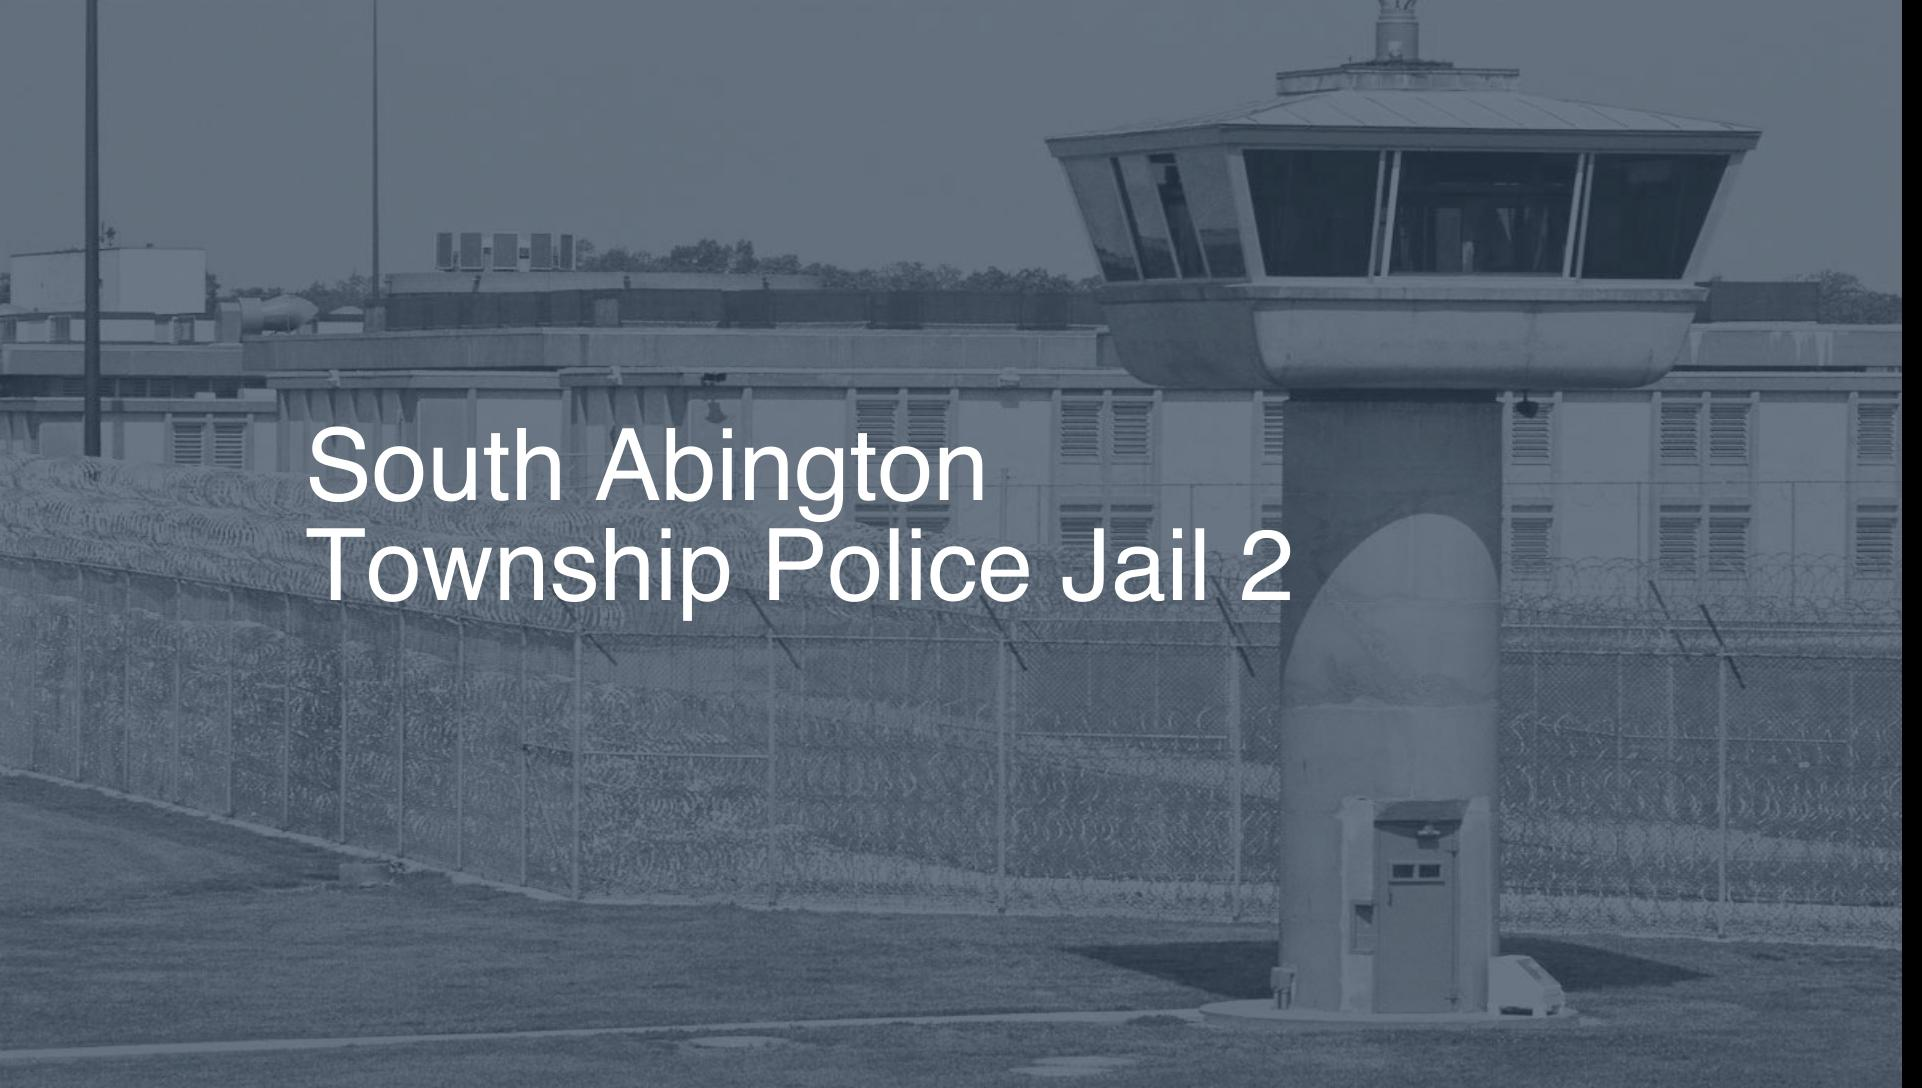 South Abington Township Police Jail correctional facility picture